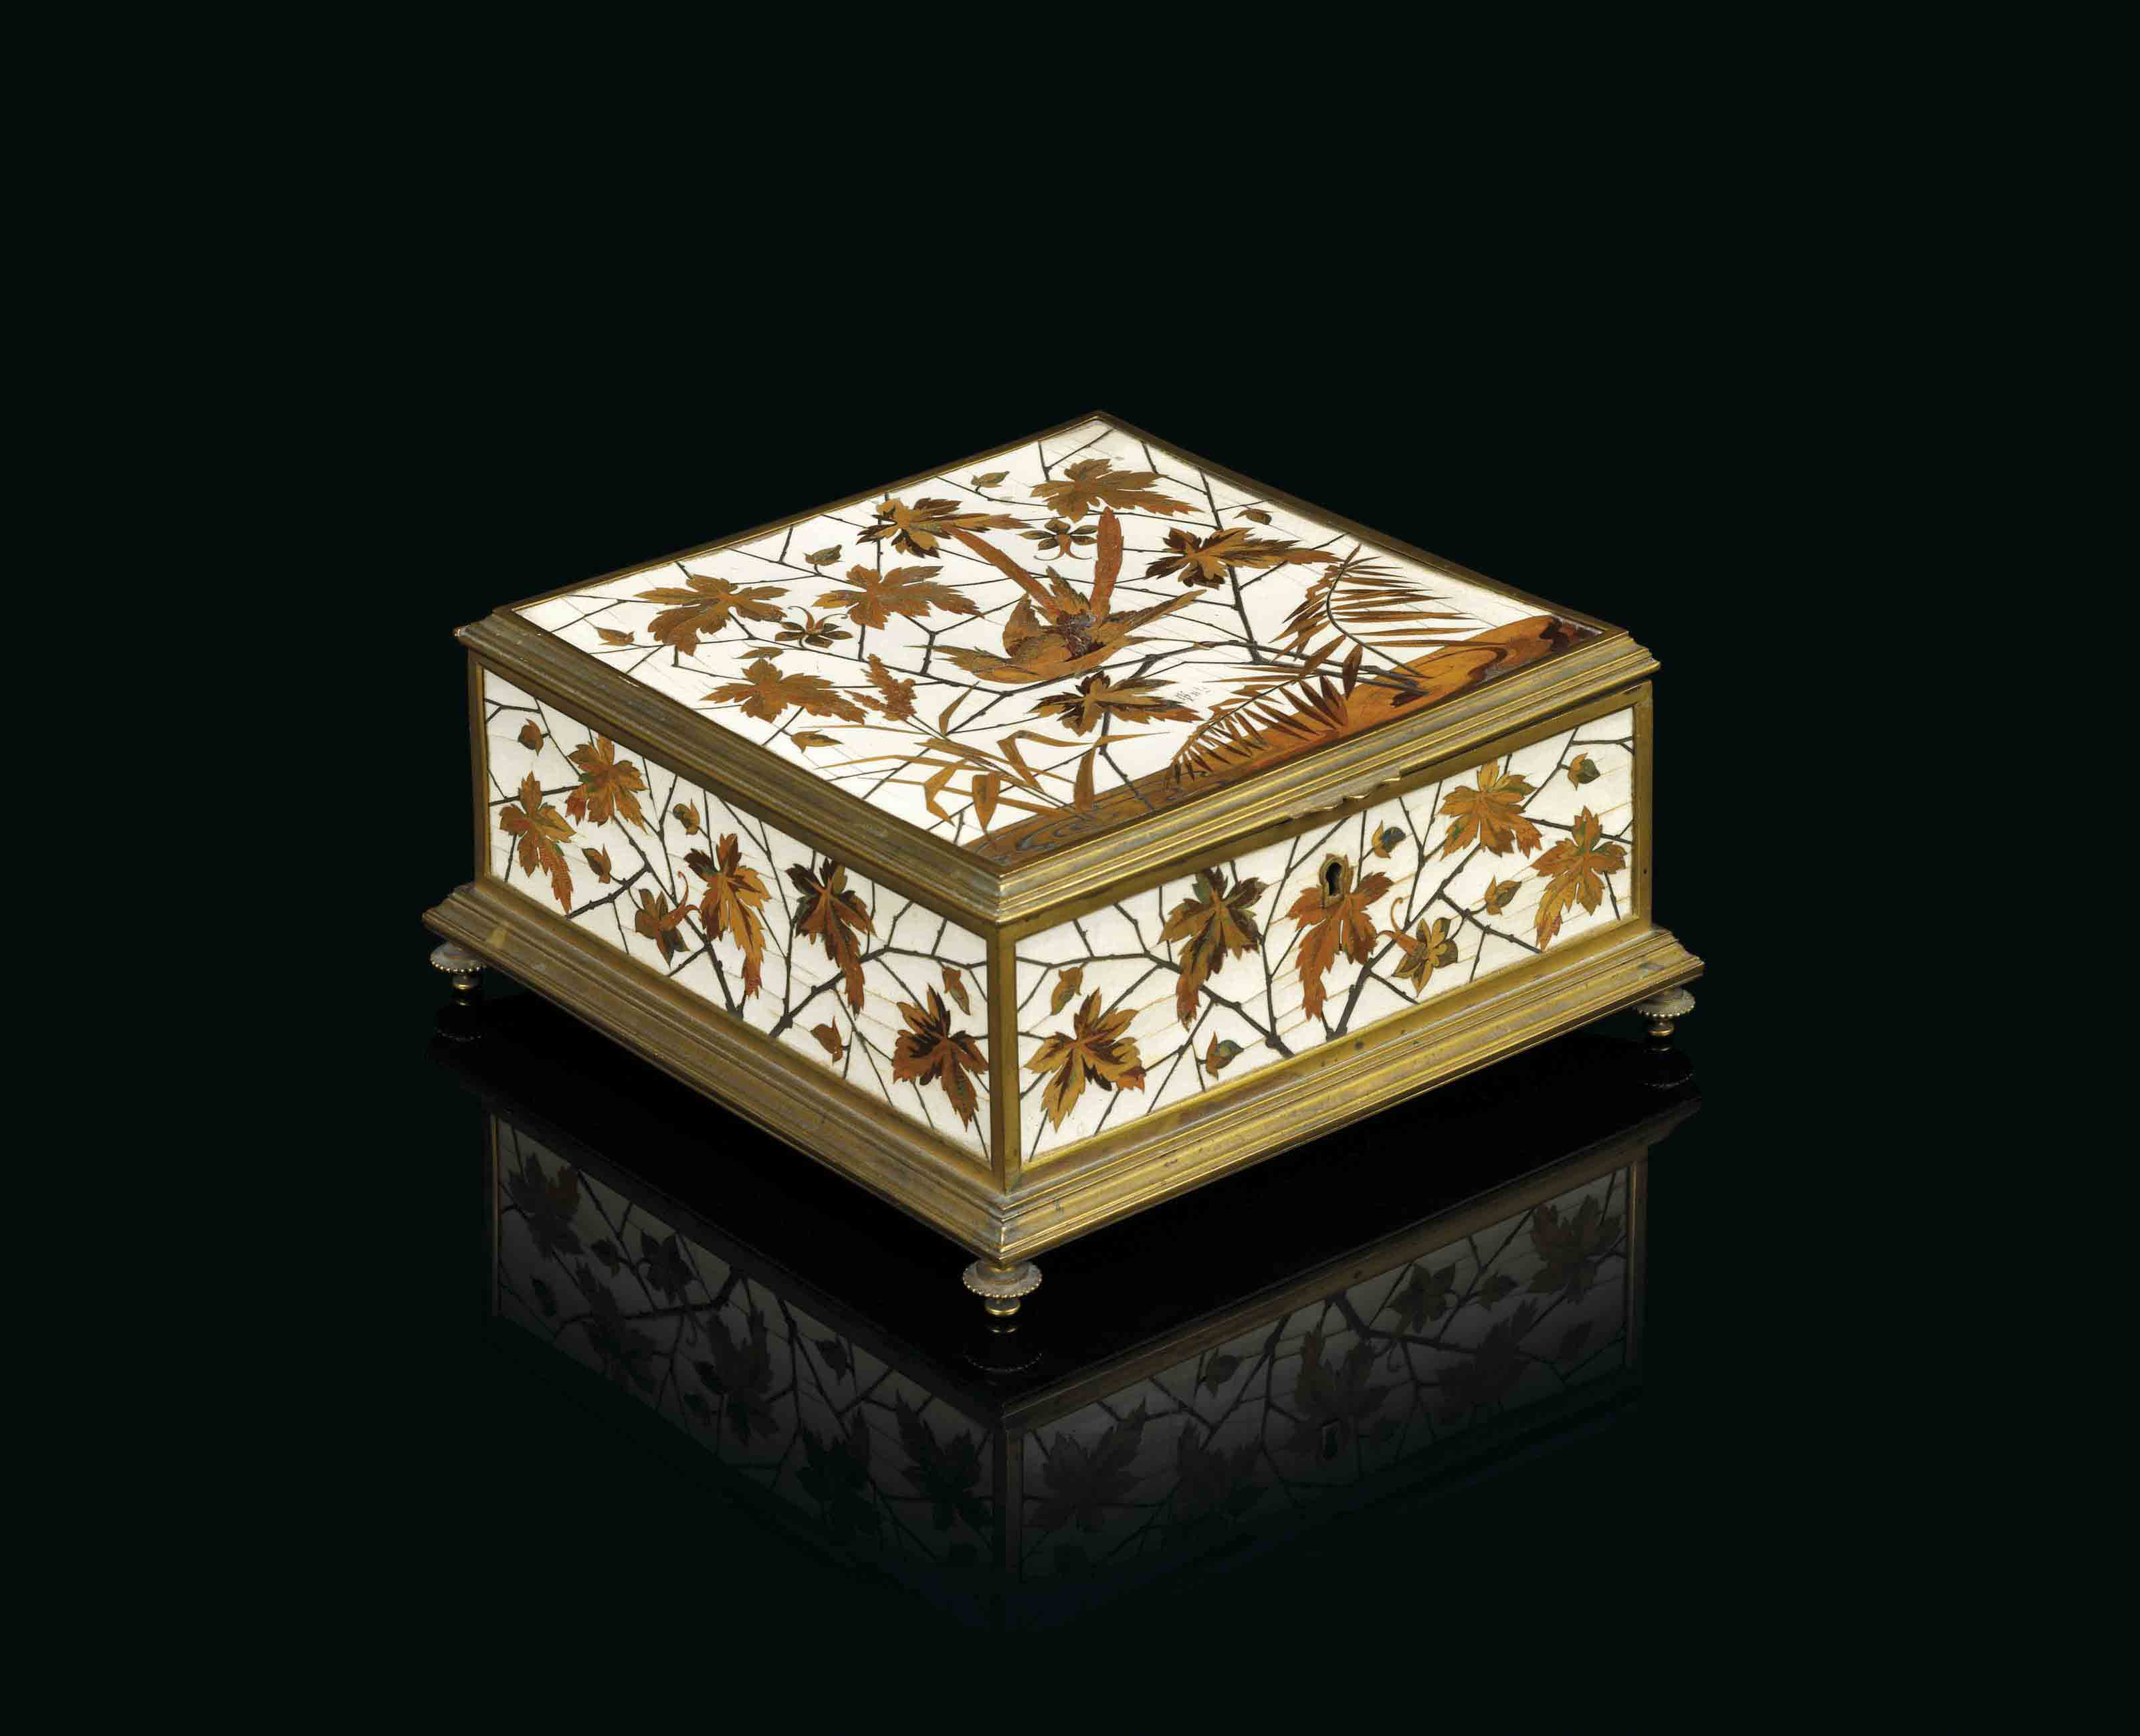 A FRENCH ORMOLU AND FRUITWOOD AND CUT-BRASS-INLAID IVORY MARQUETRY CASKET